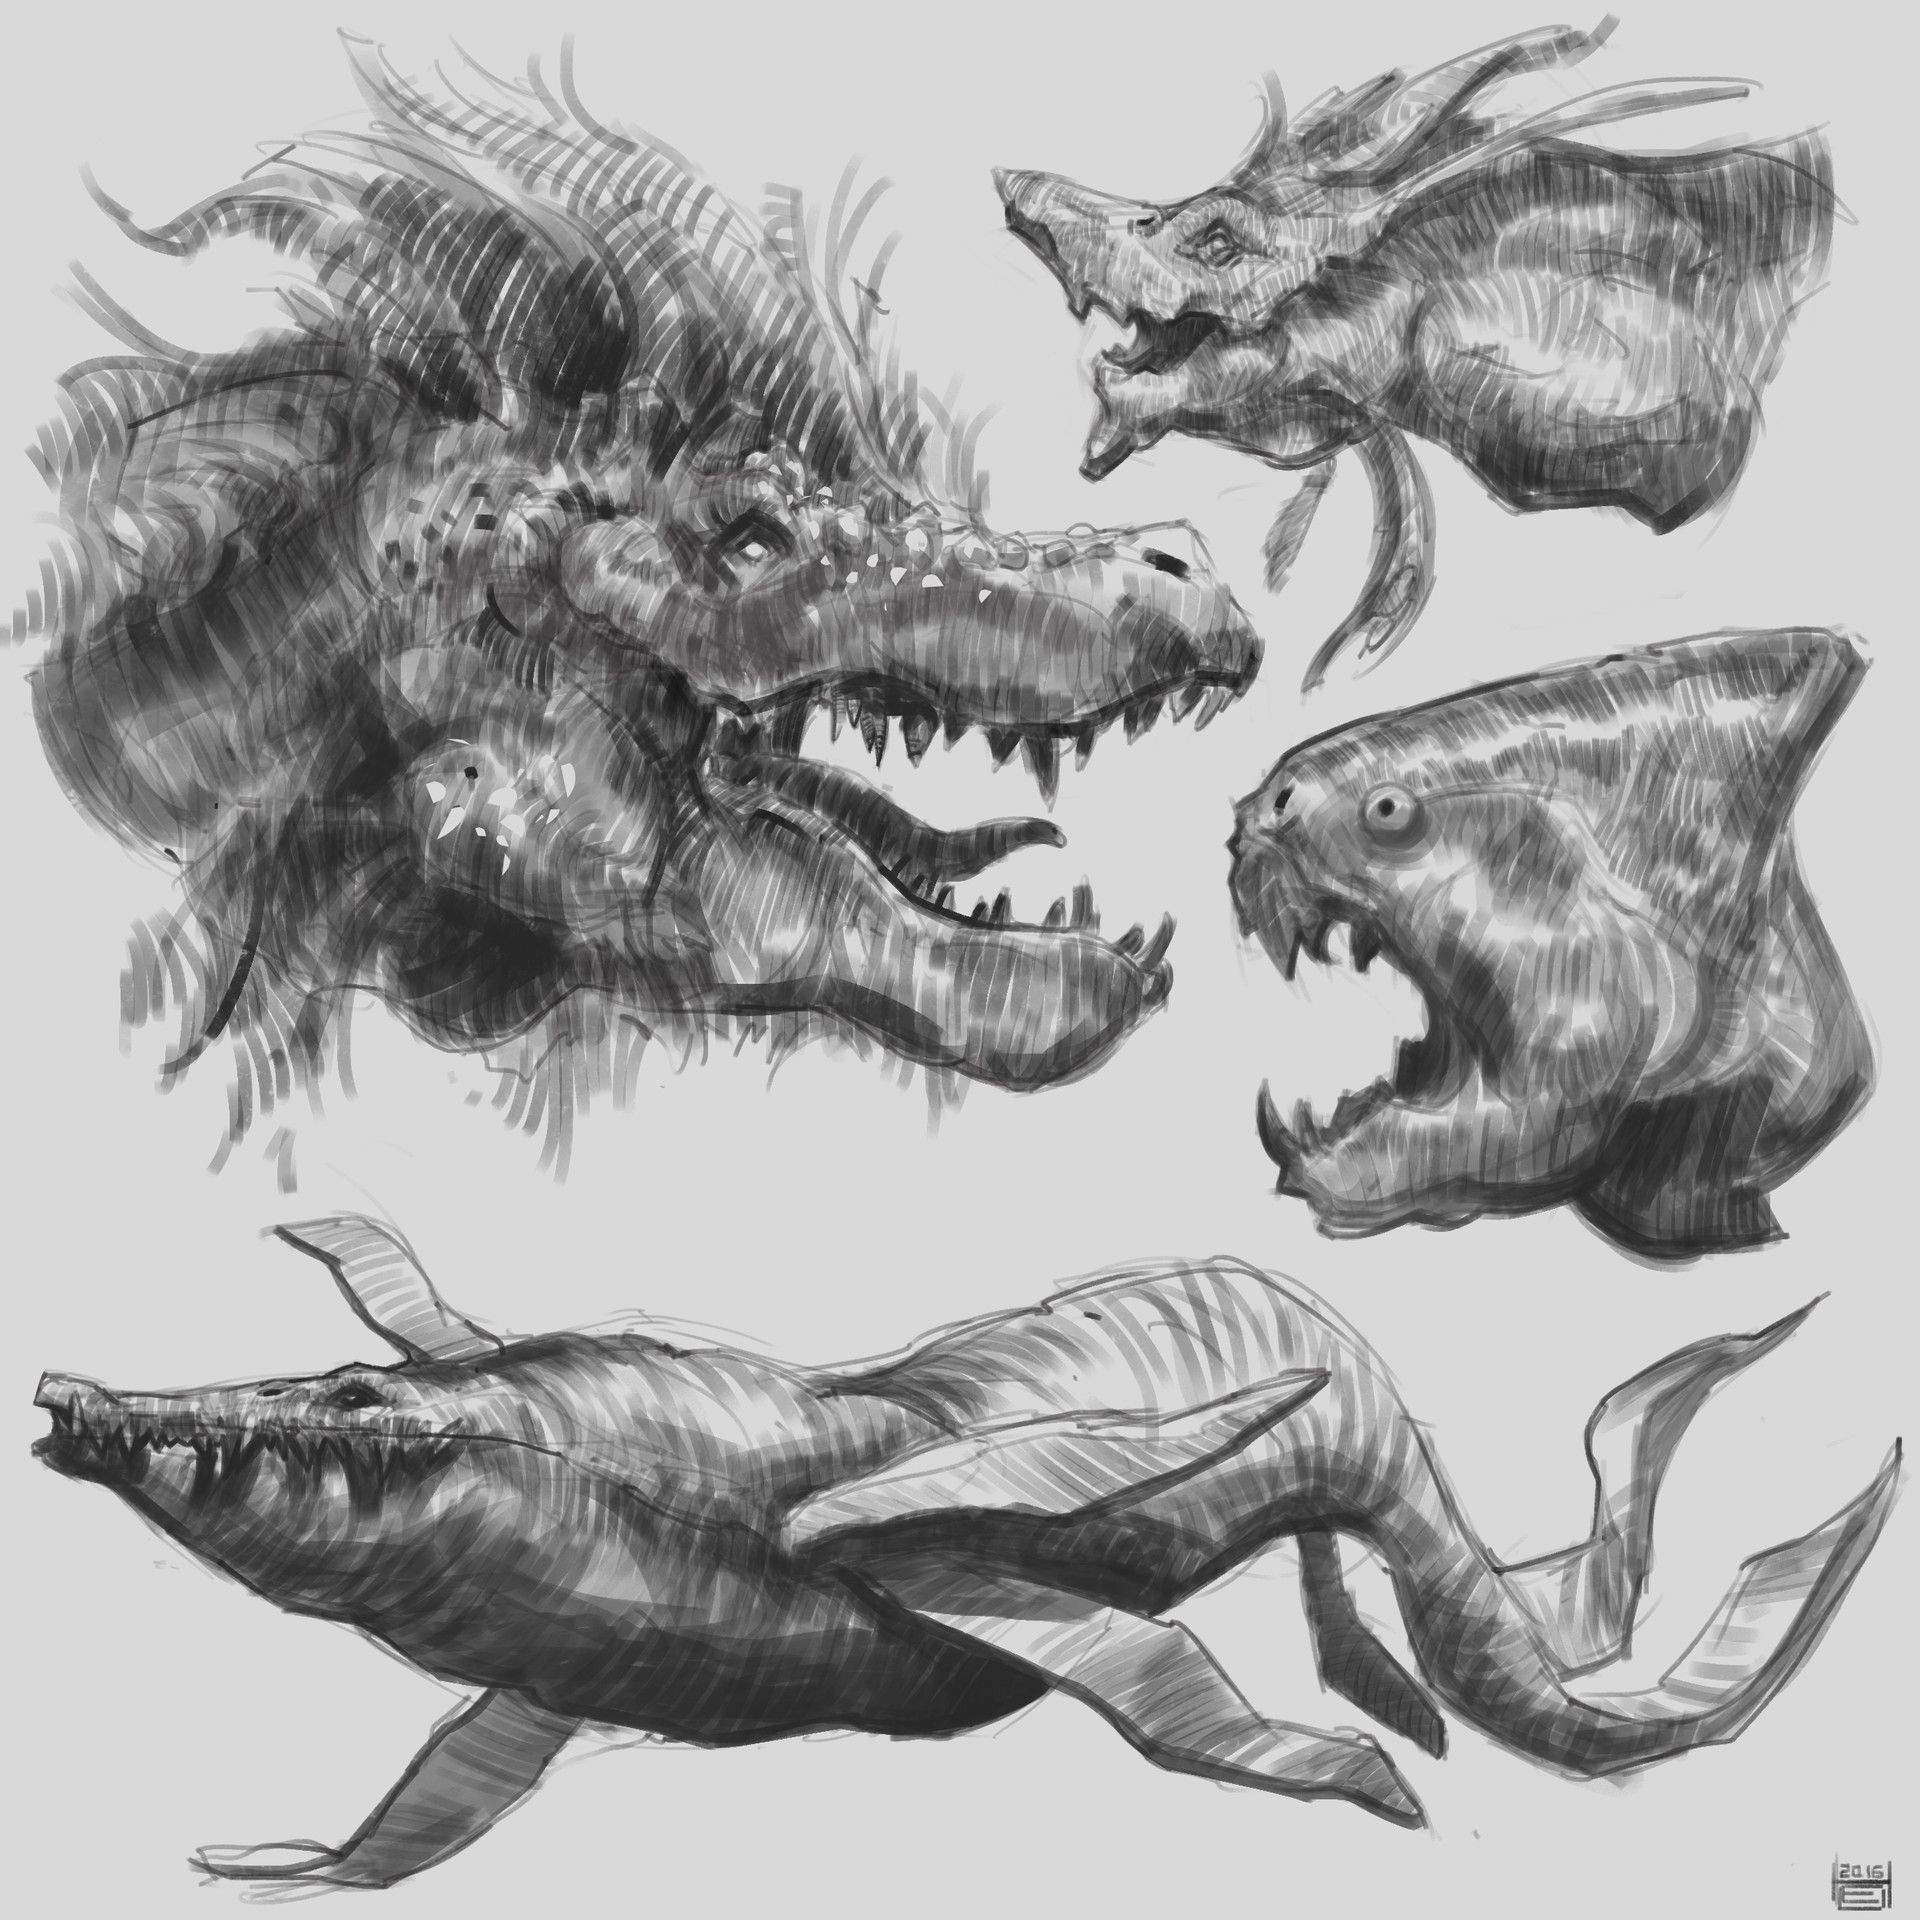 ArtStation - Sketches week 9 Creatures, Hueala Teodor